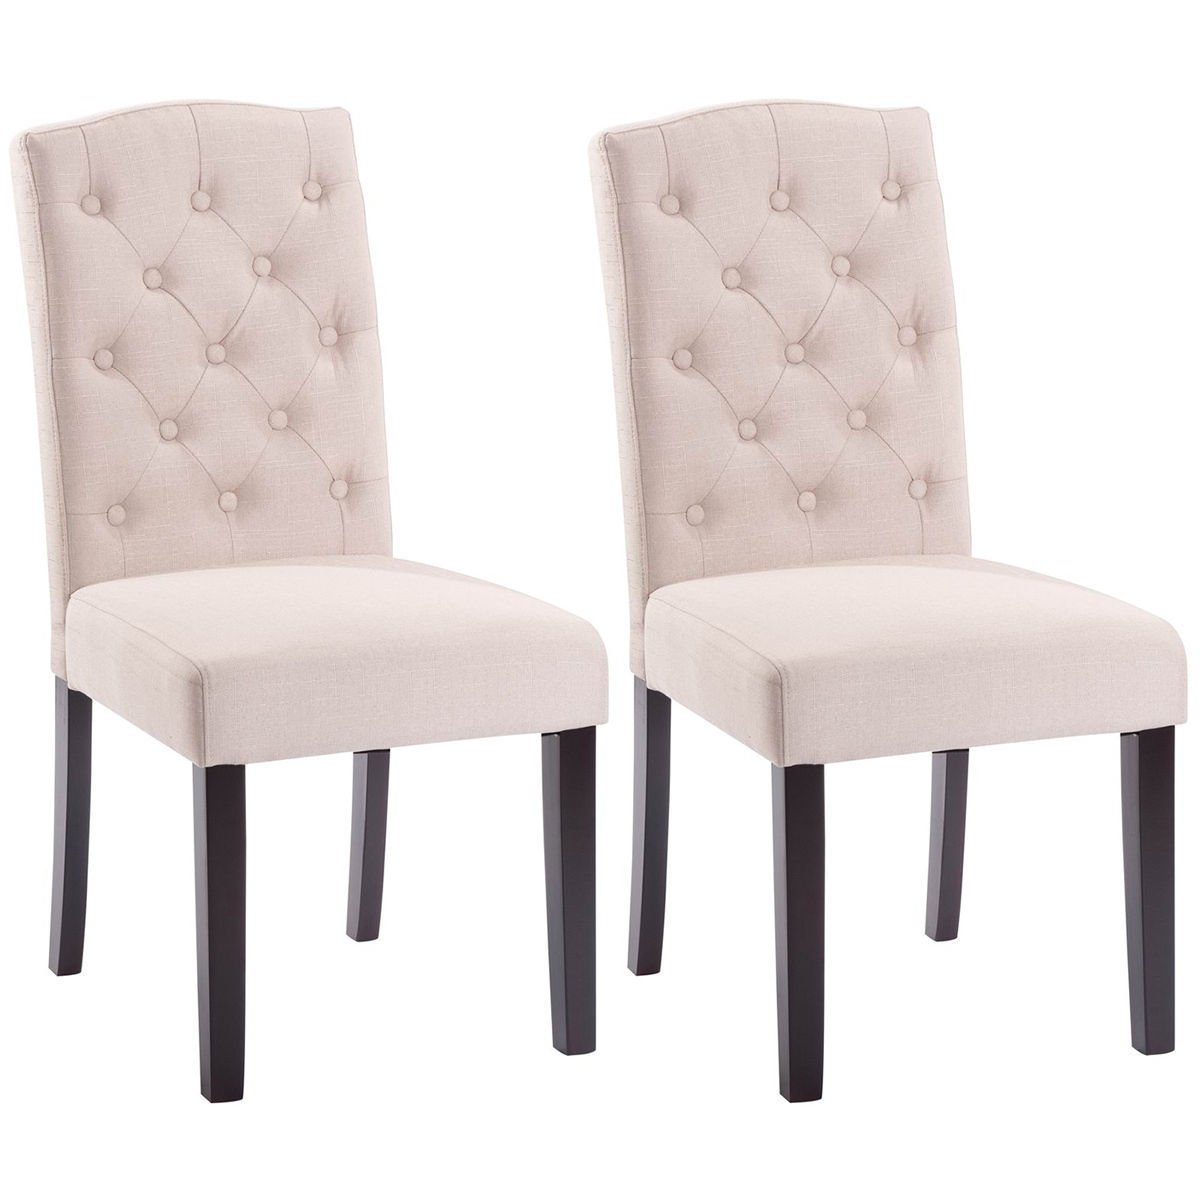 Linen Fabric Wood Accent Dining Chair Tufted Modern Living Room Beige Set of 2